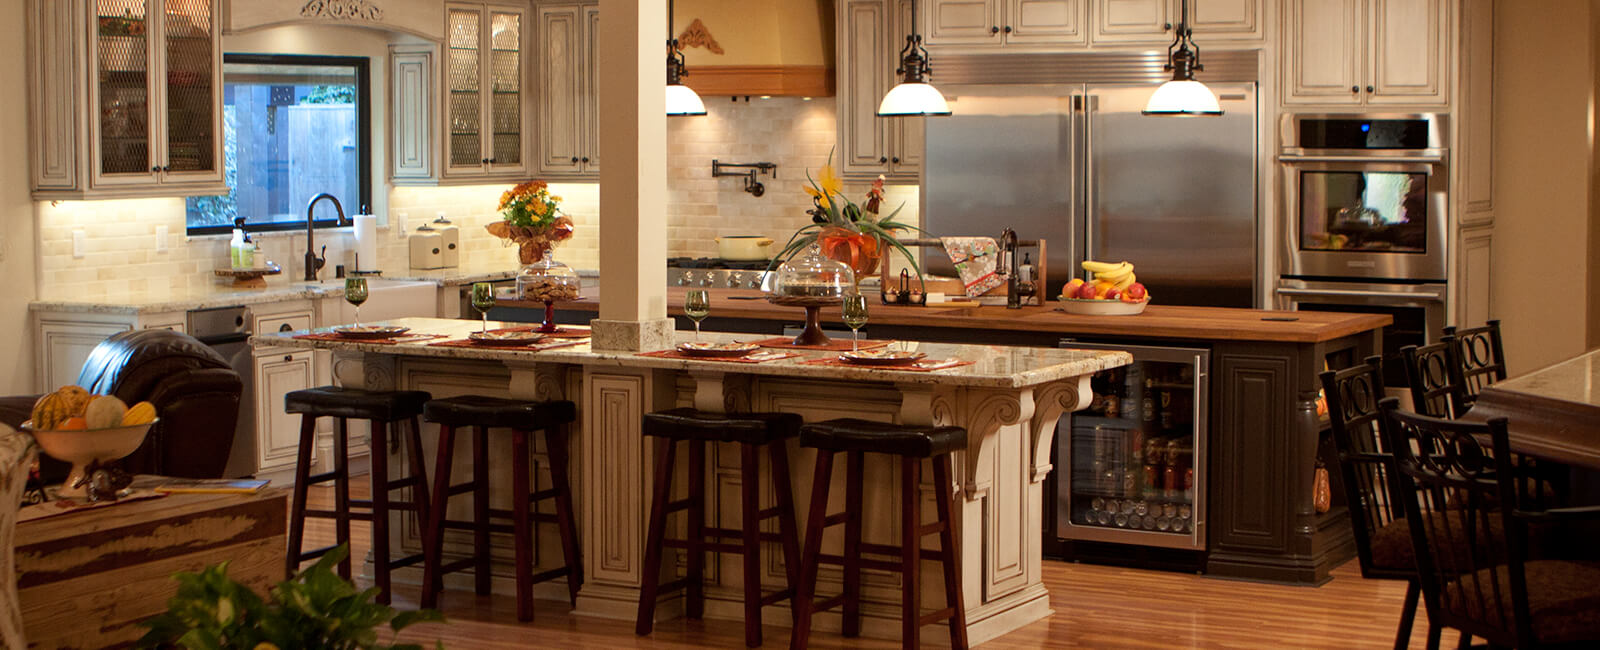 cost best all from inspirational awesome much a how bathroom image of about remodeling kitchen gallery estimator remodel does